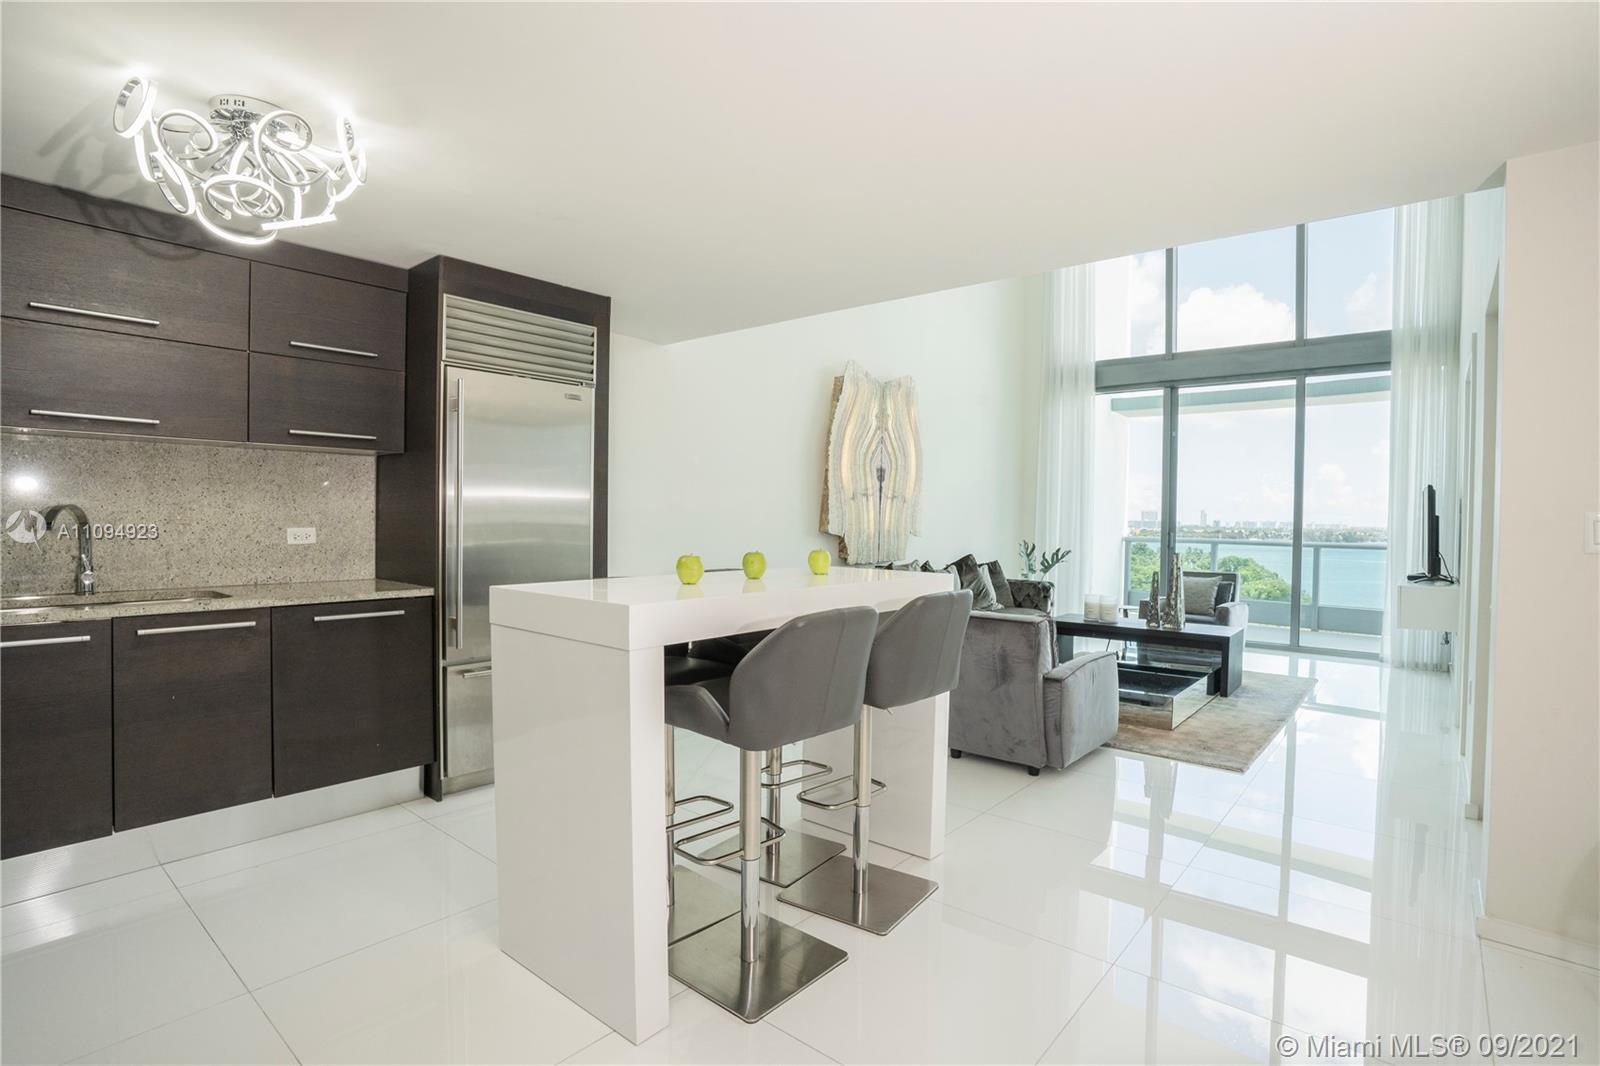 Condo For Rent at 900 BISCAYNE BAY CONDO,900 Biscayne